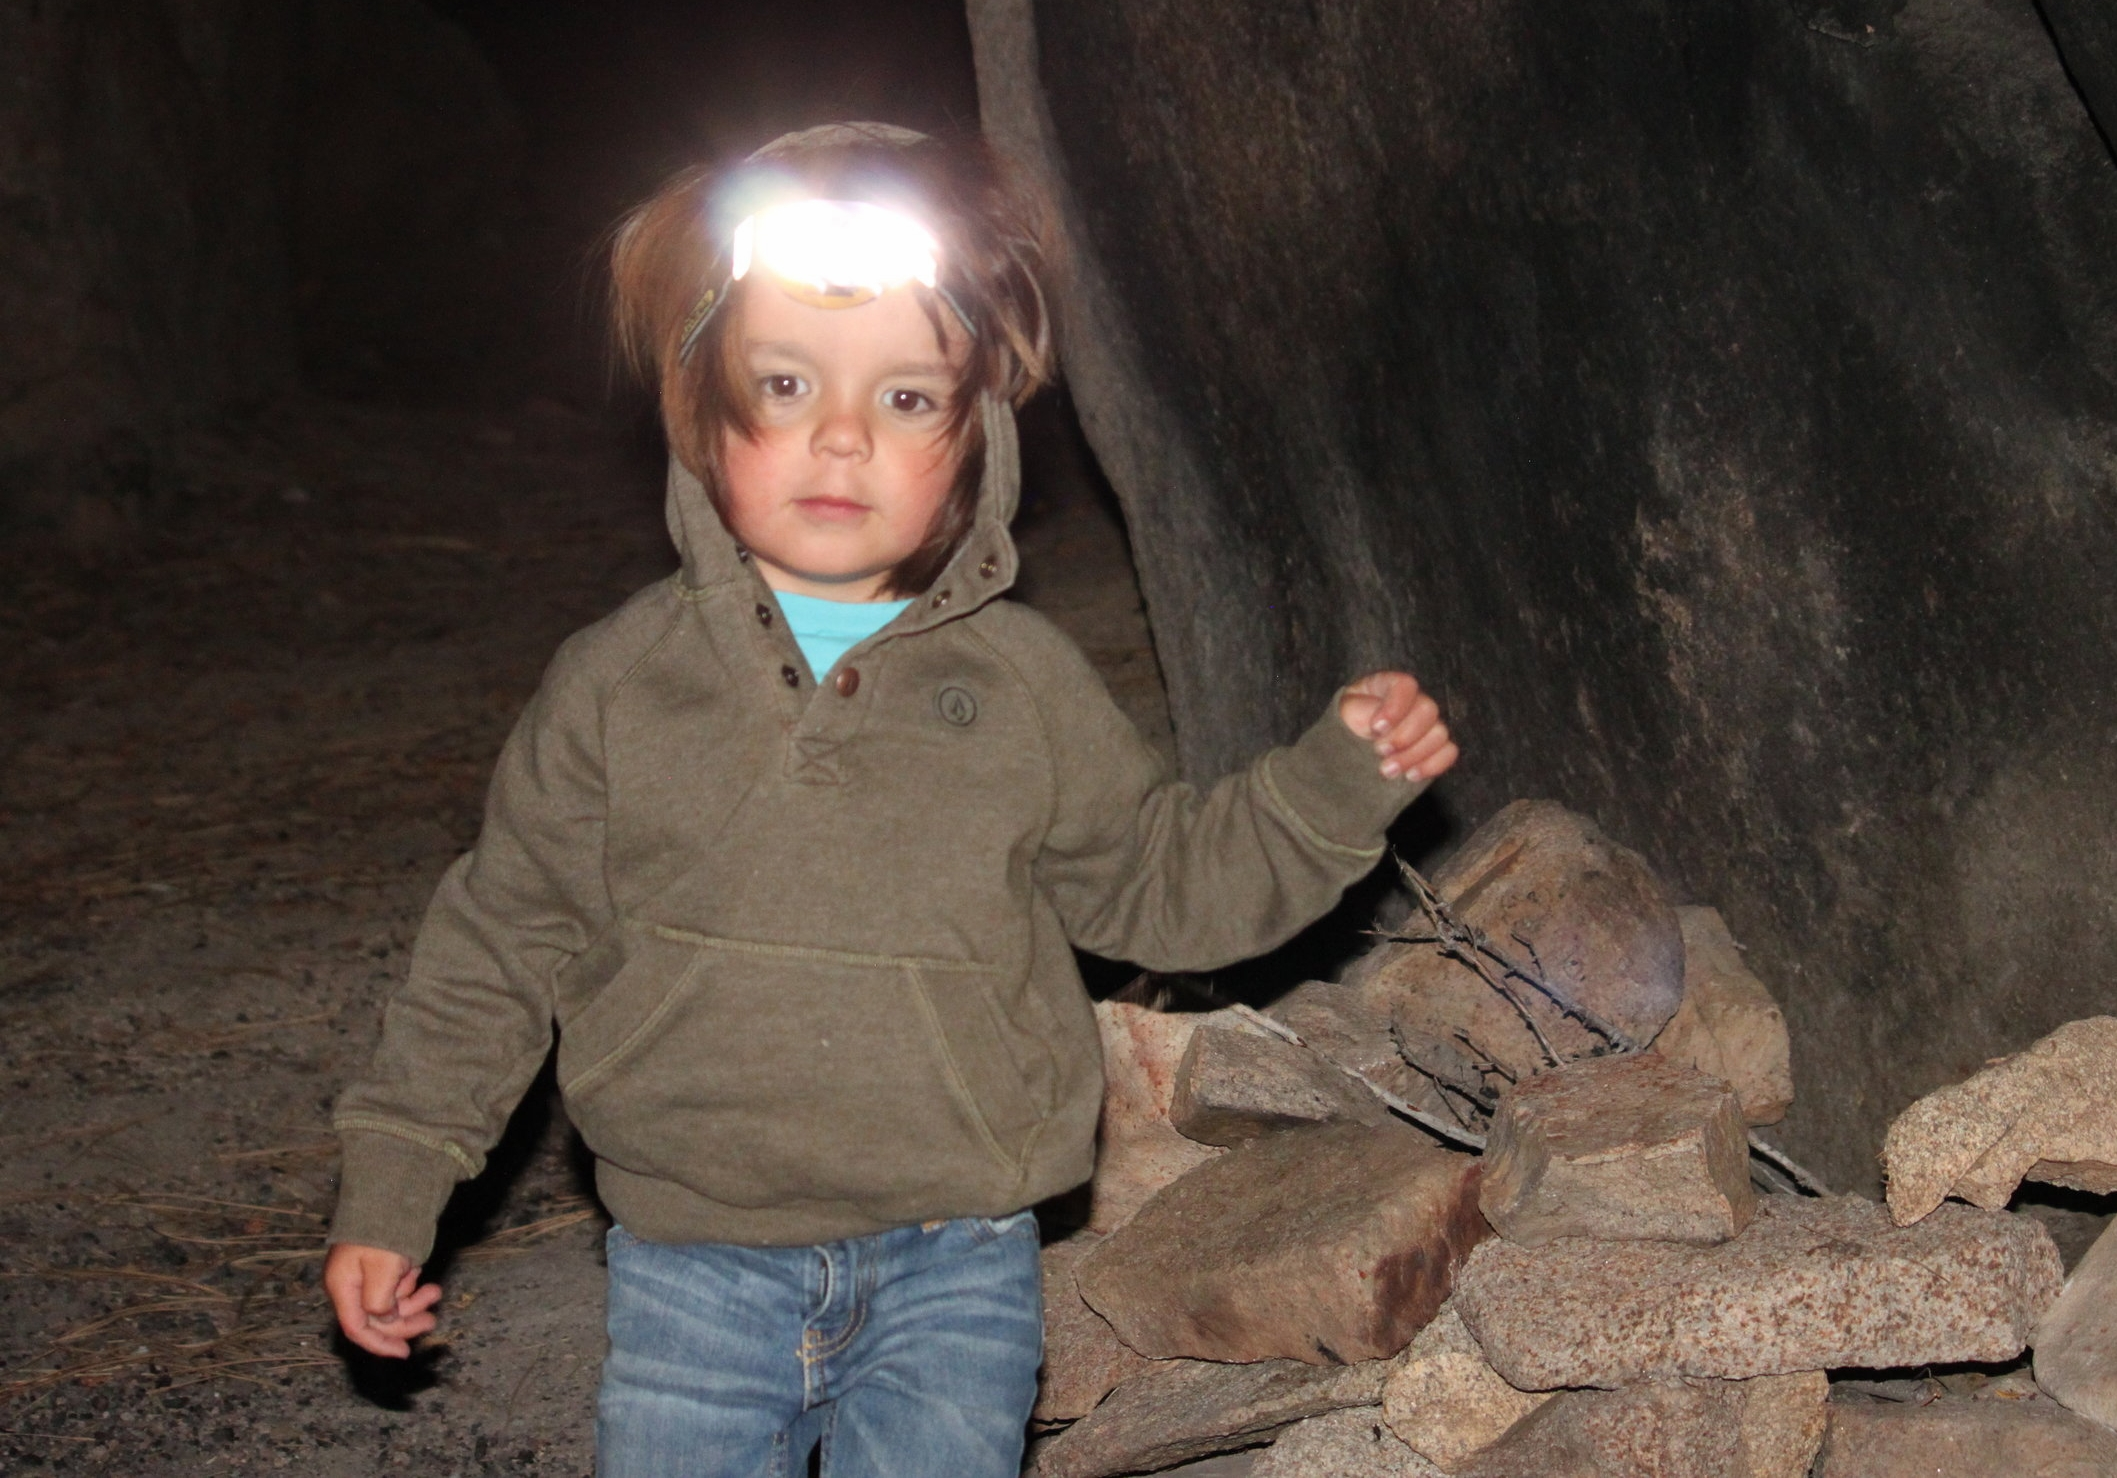 Keegan, three years old. Favorite camp activity: Building Fires.